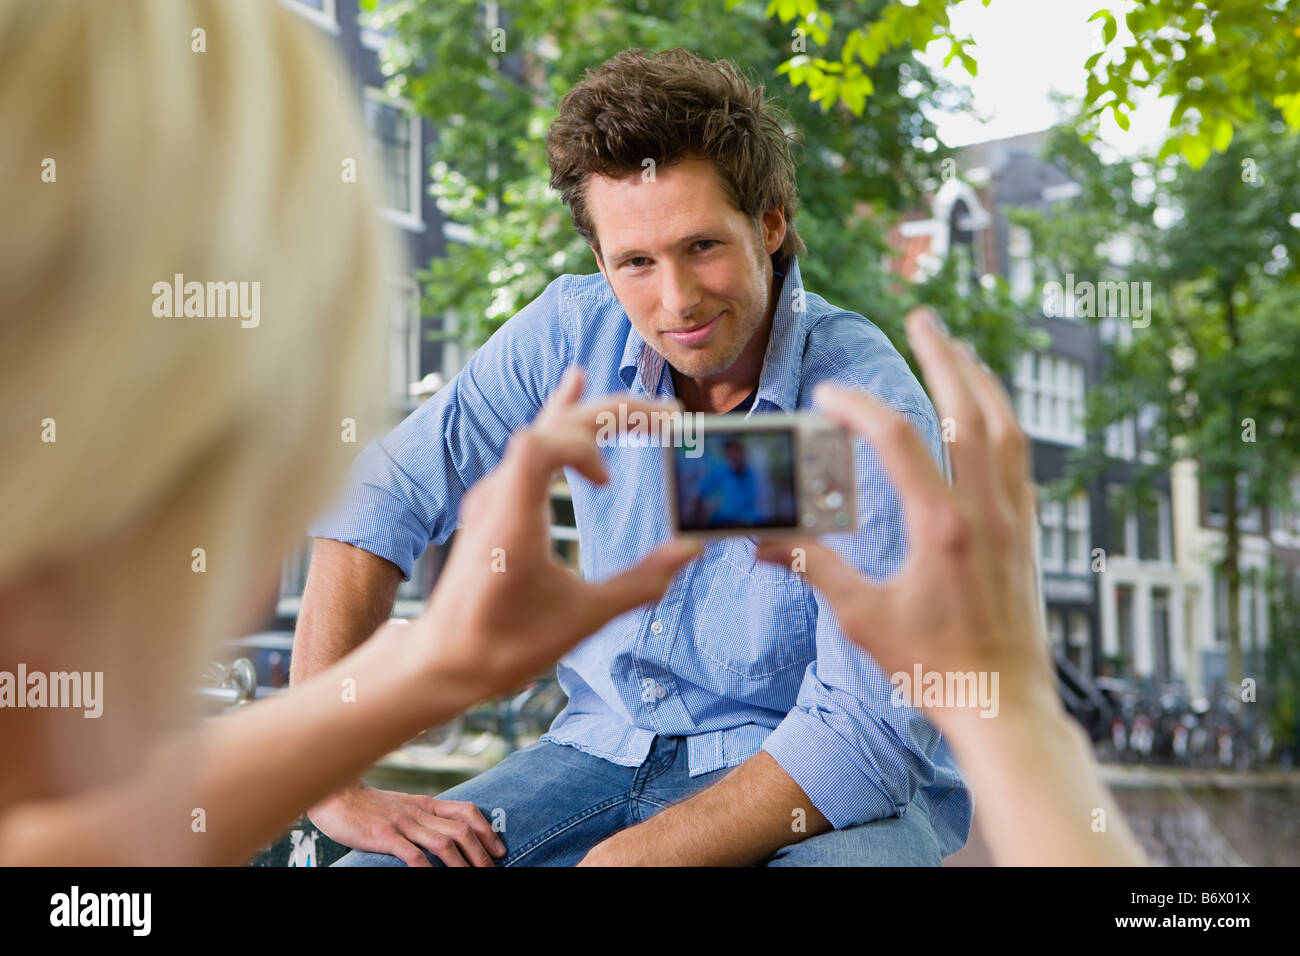 Man being photographed - Stock Image